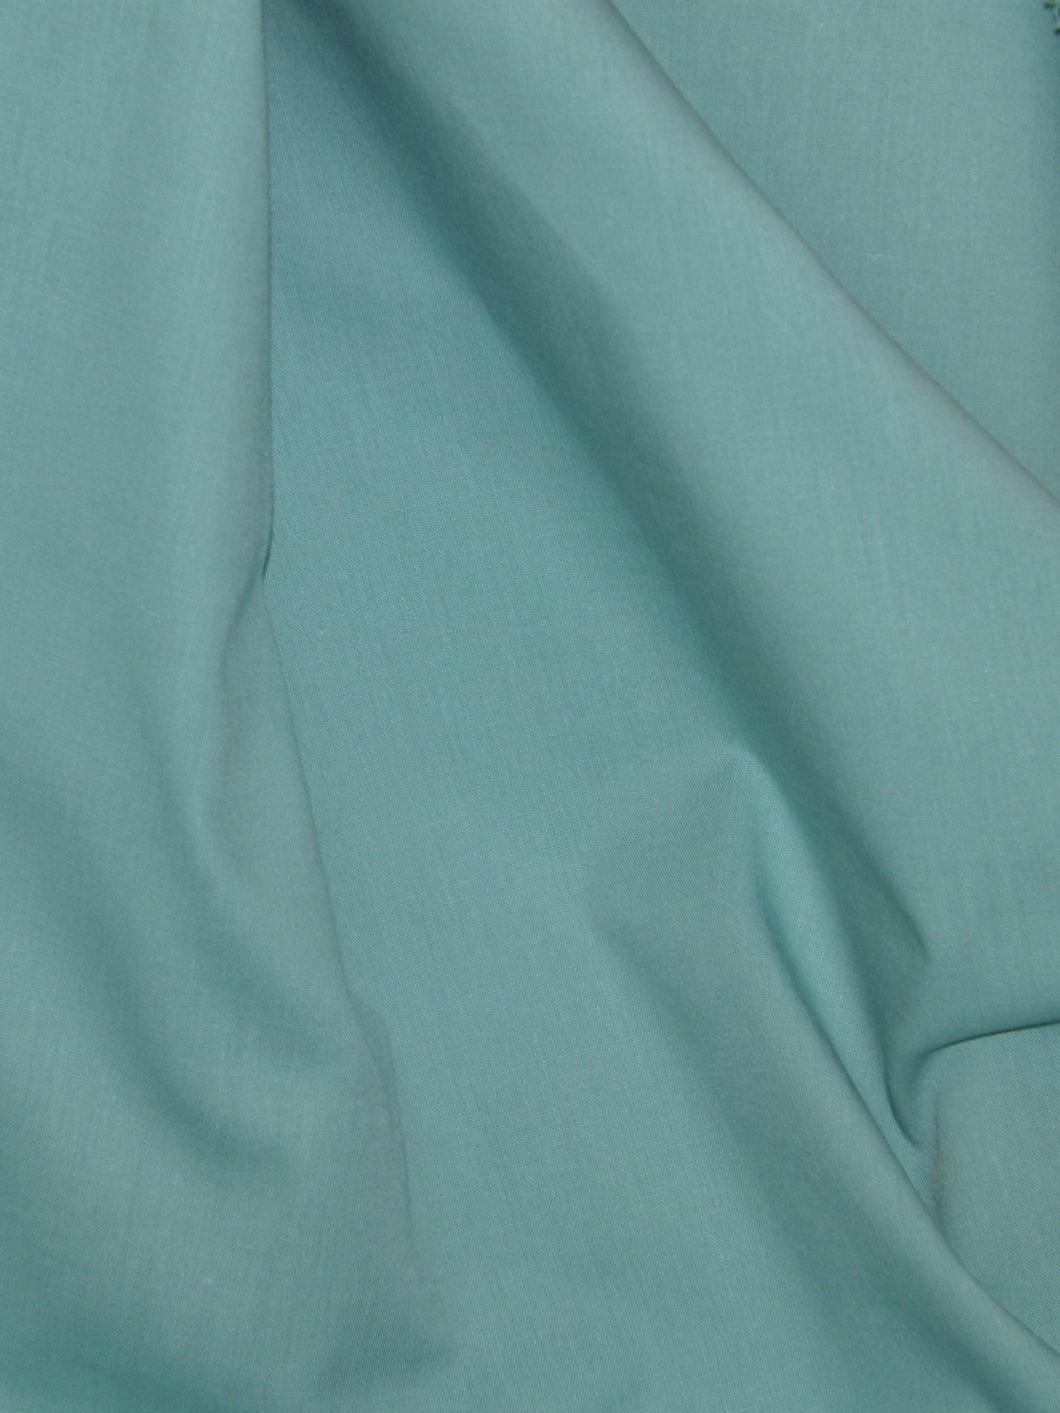 Solid Mint Green - Cotton